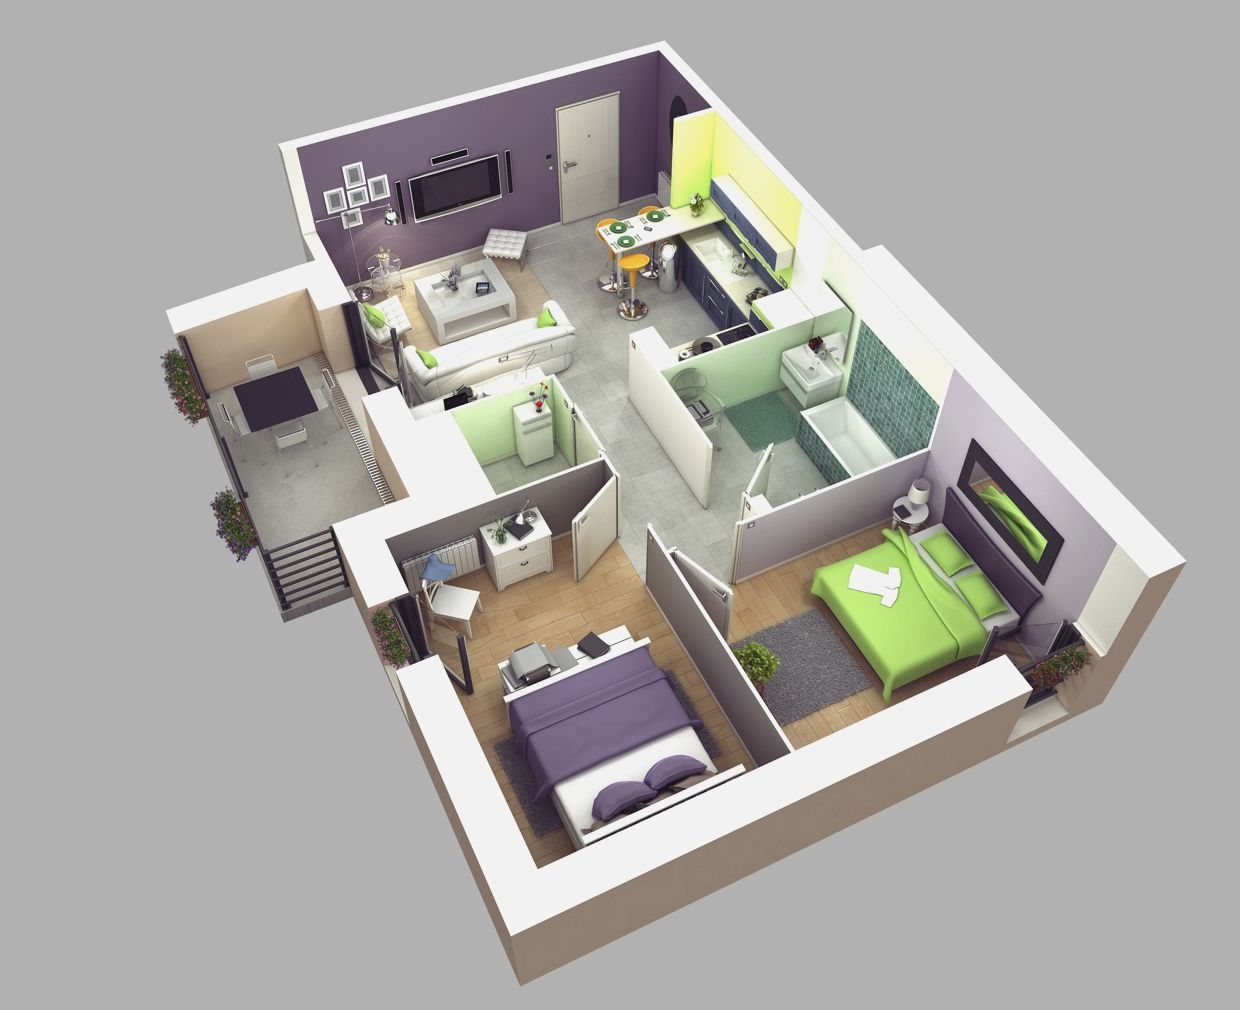 1 bedroom house plans 3d just the two of us apartment for Simple 1 bedroom house plans